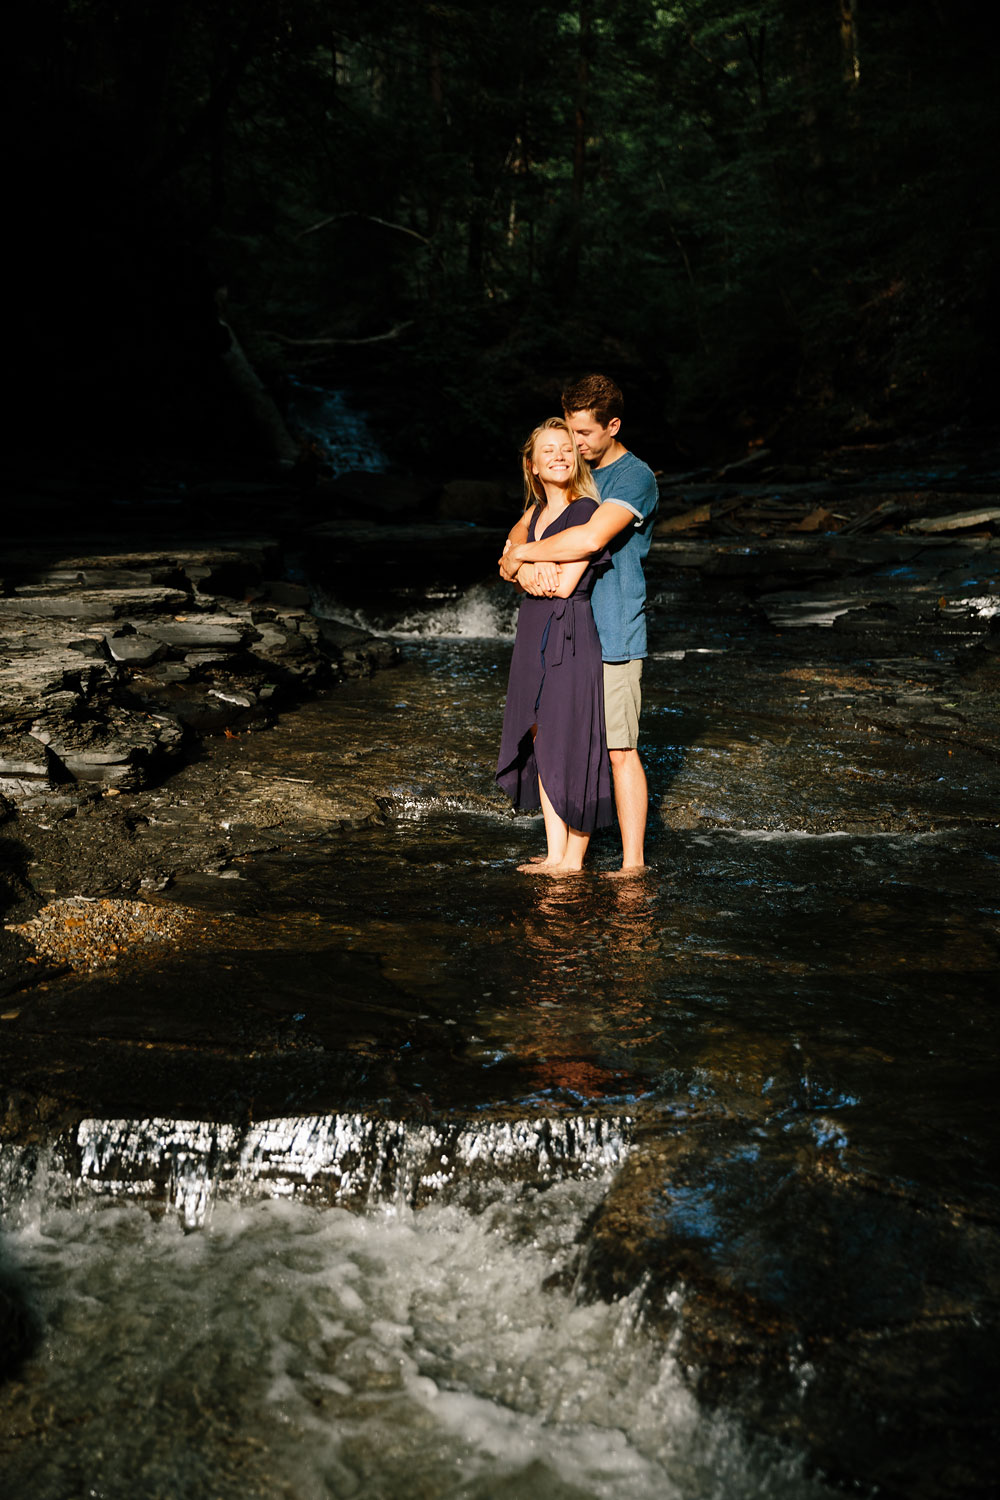 wedding-photographers-in-cleveland-ohio-in-cuyahoga-valley-national-park-engagement-photography-31.jpg